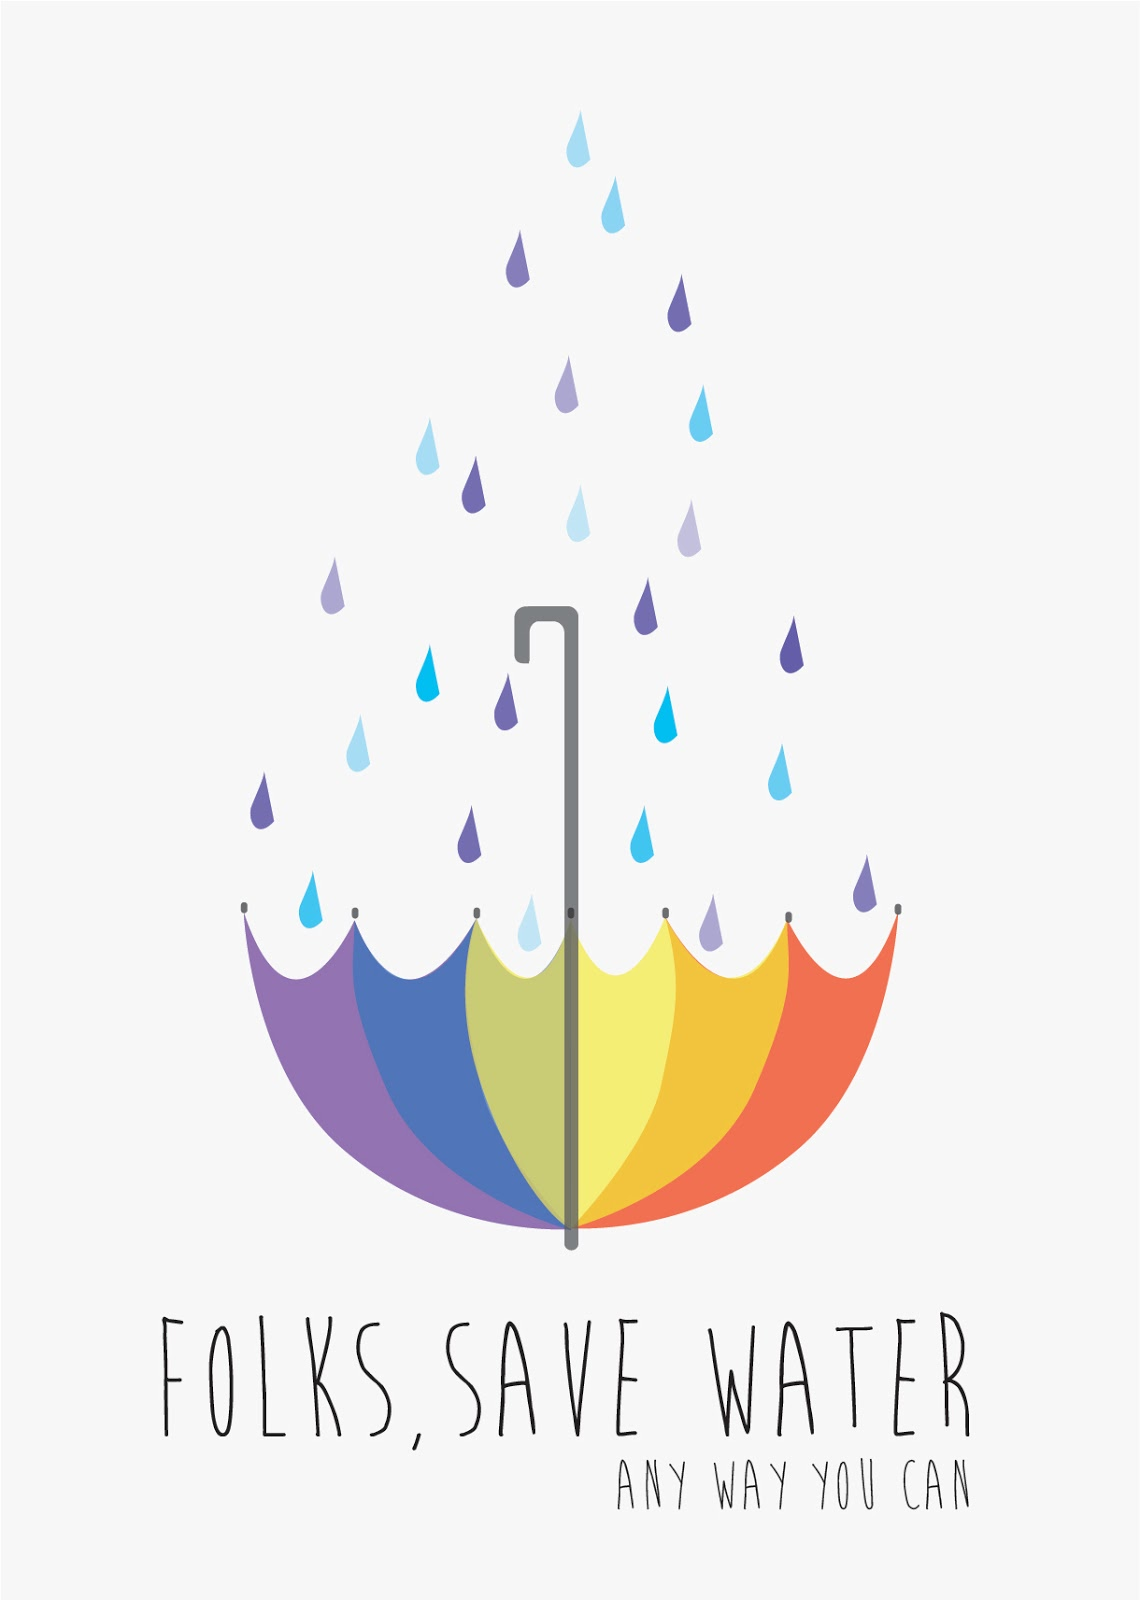 Poster design on save water - Folks Save Water Any Way You Can Poster